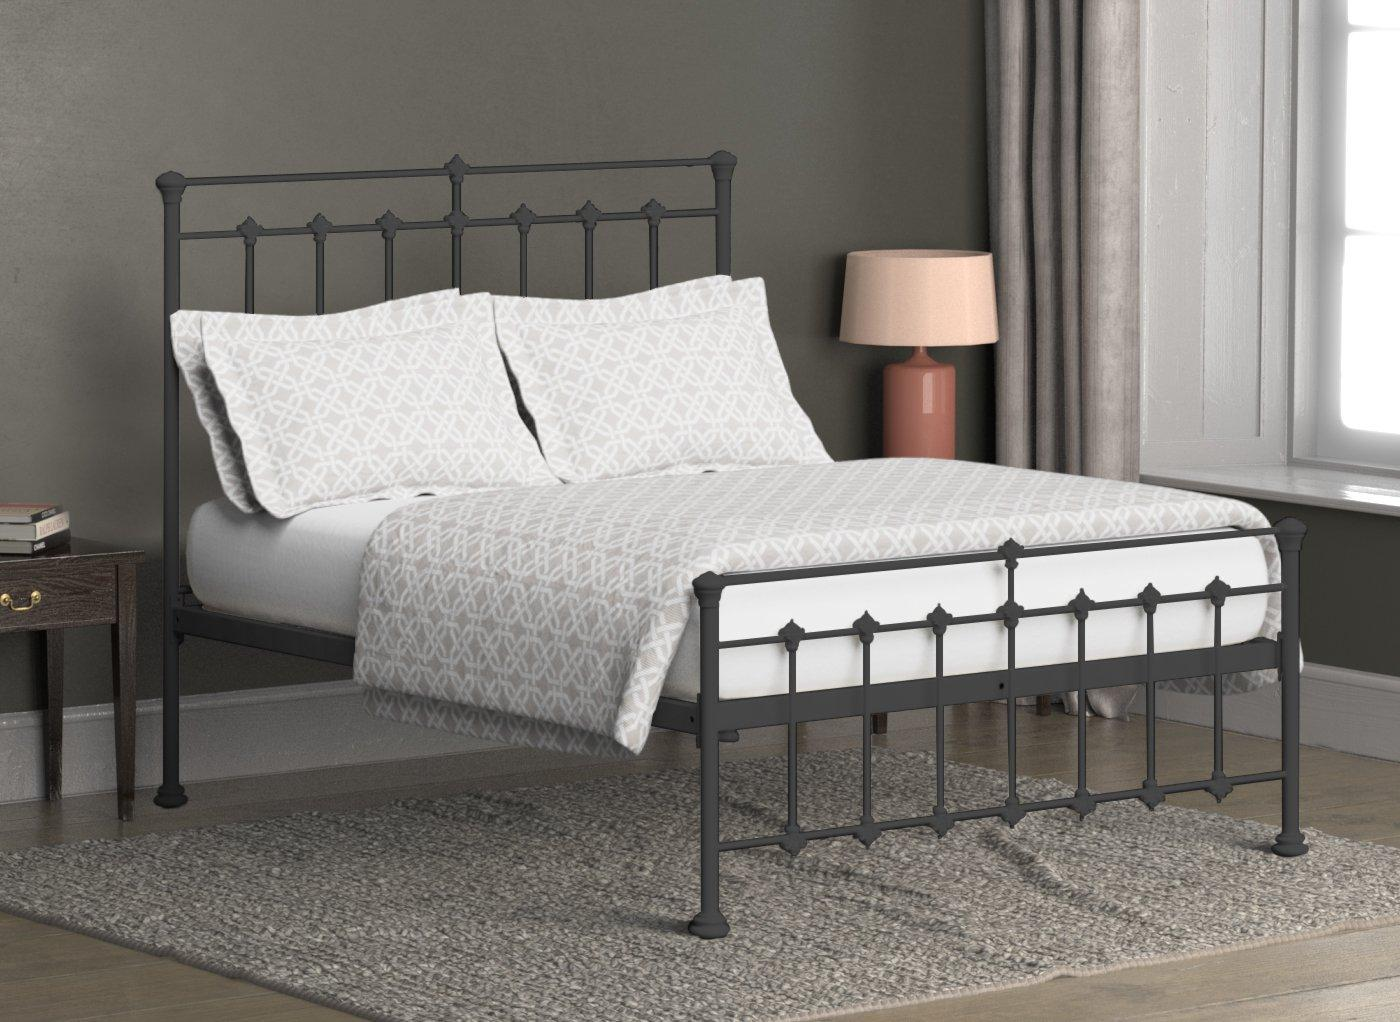 Edwardian Metal Bed Frame 4'0 Small double BLACK